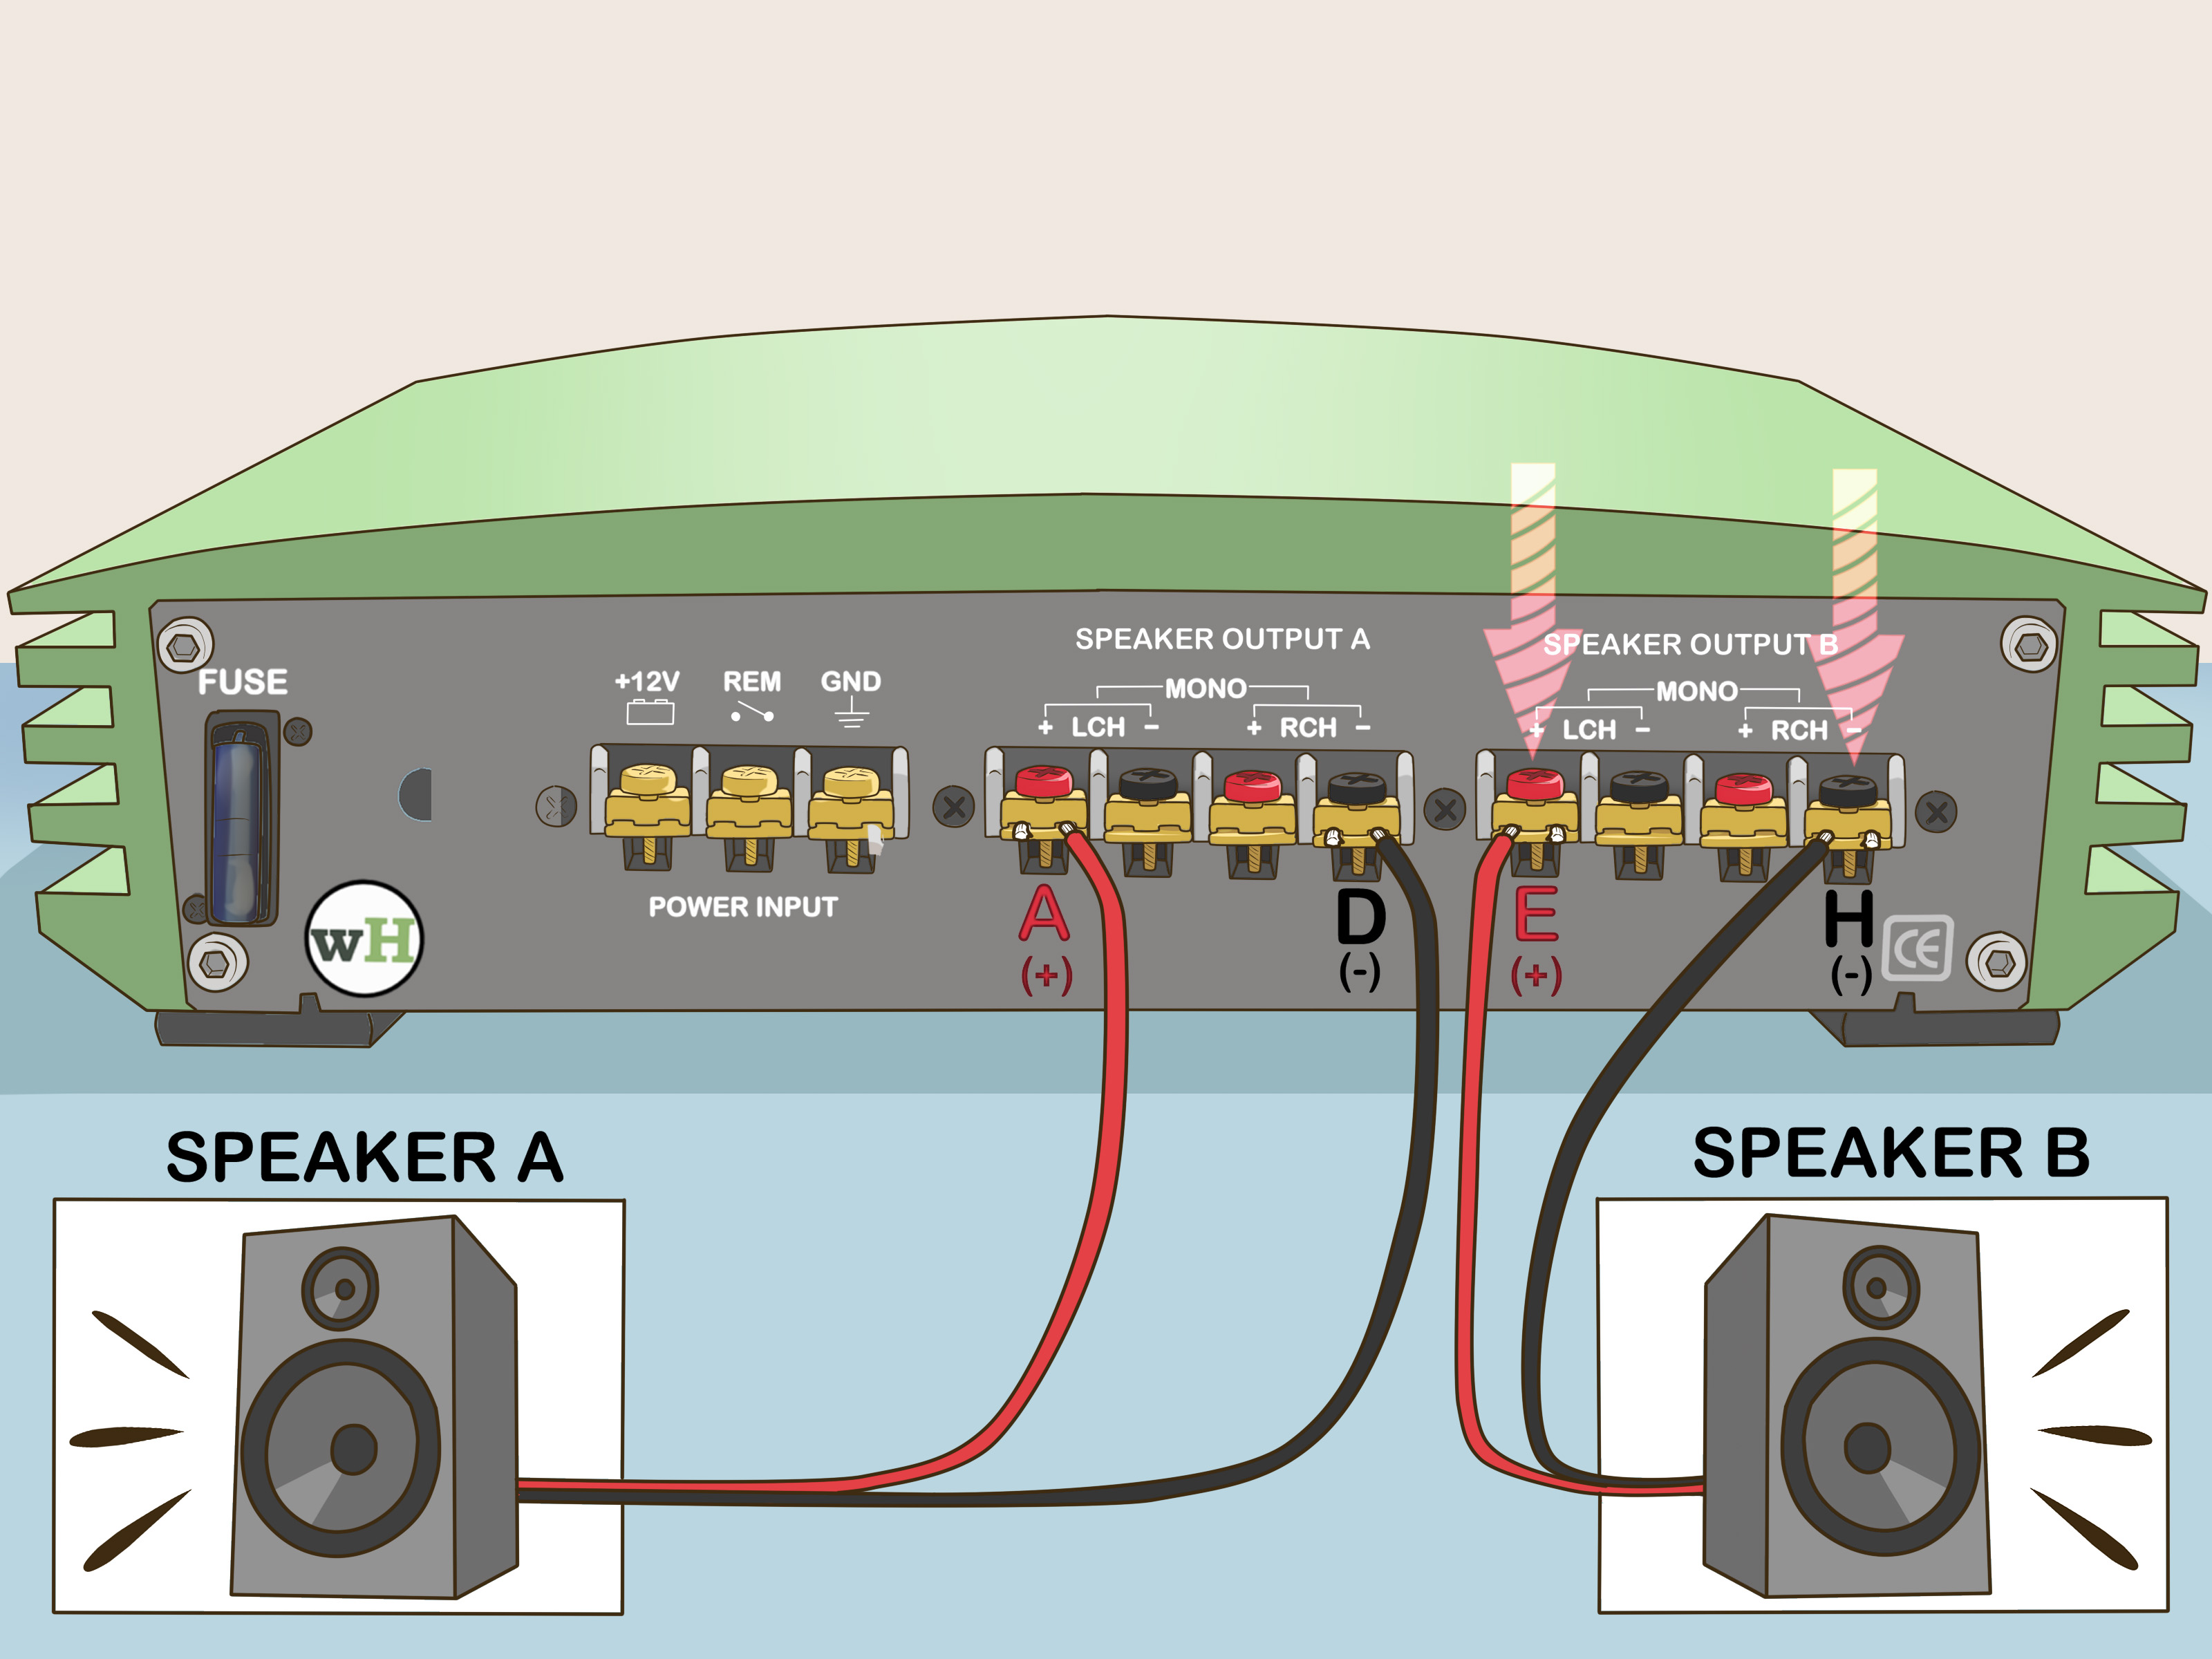 How To Bridge An Amplifier: 7 Steps (with Pictures)